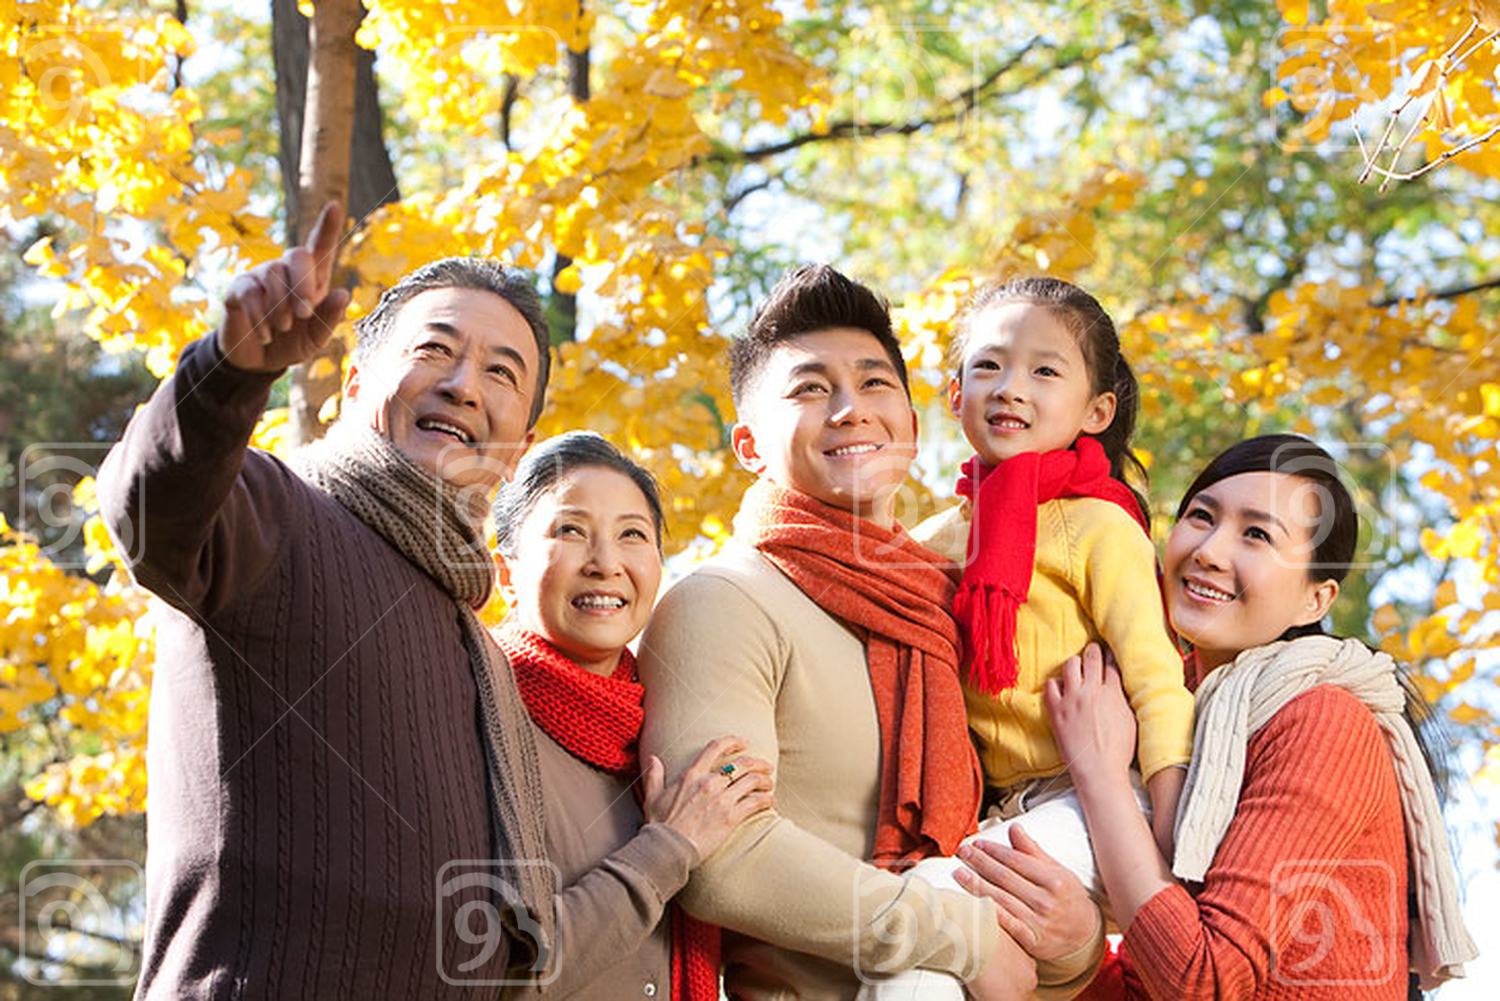 Chinese family in a park in autumn